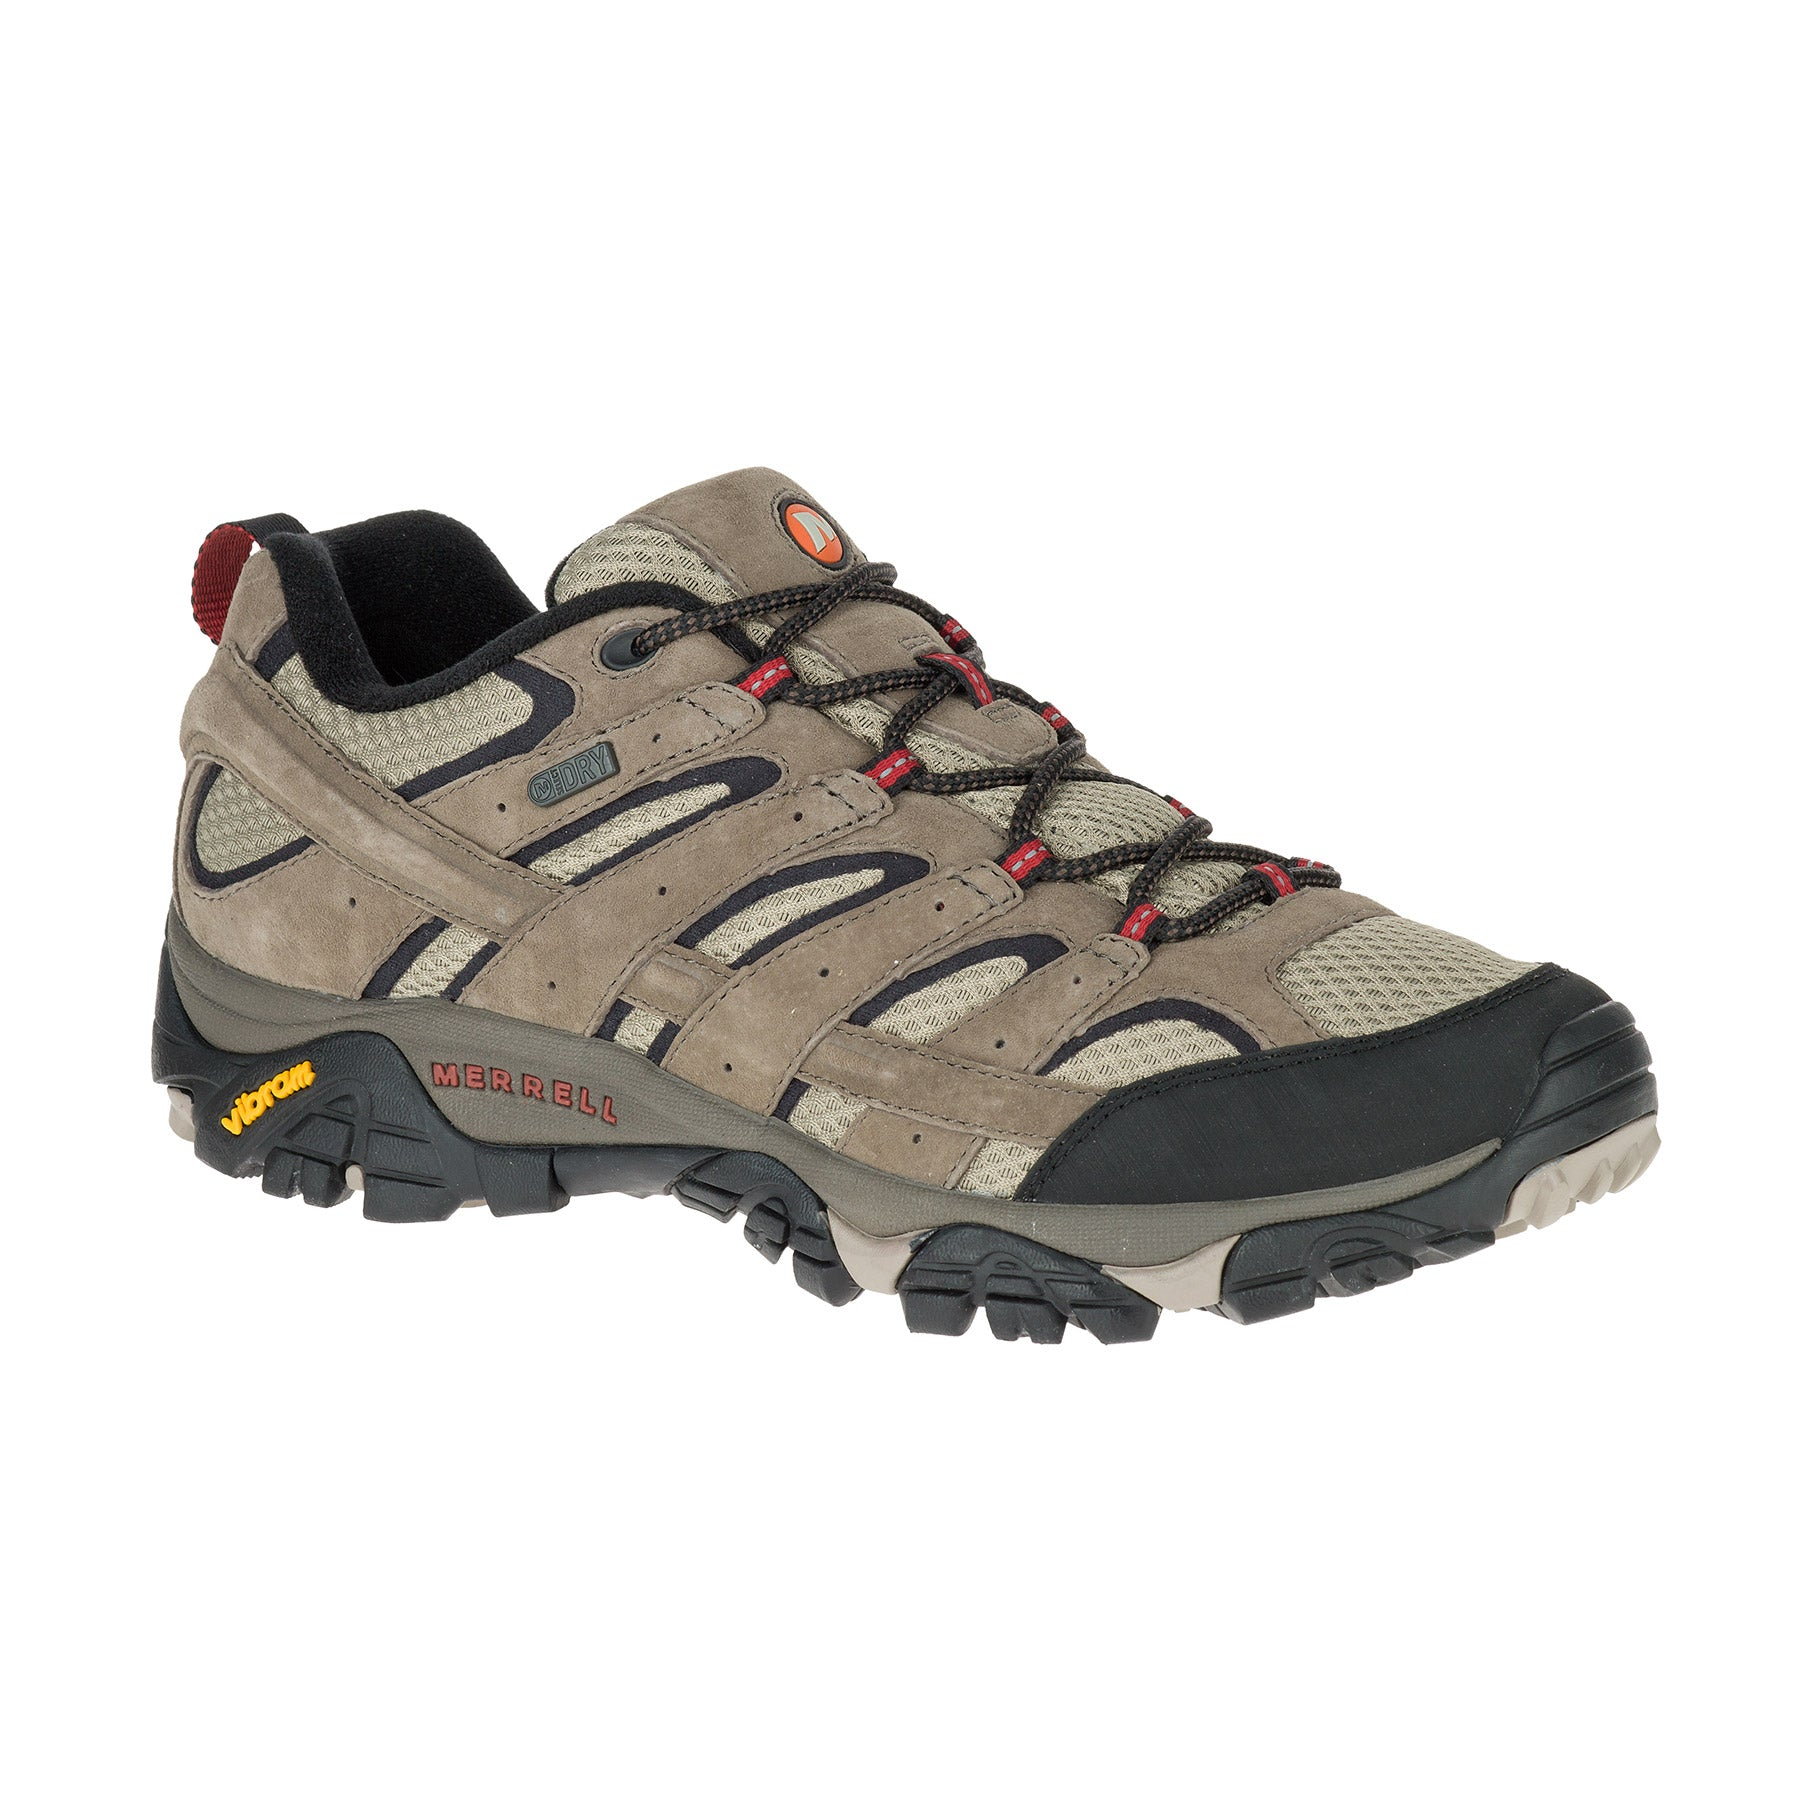 merrell moab 2 waterproof mens hiking shoe side view in color tan and light brown